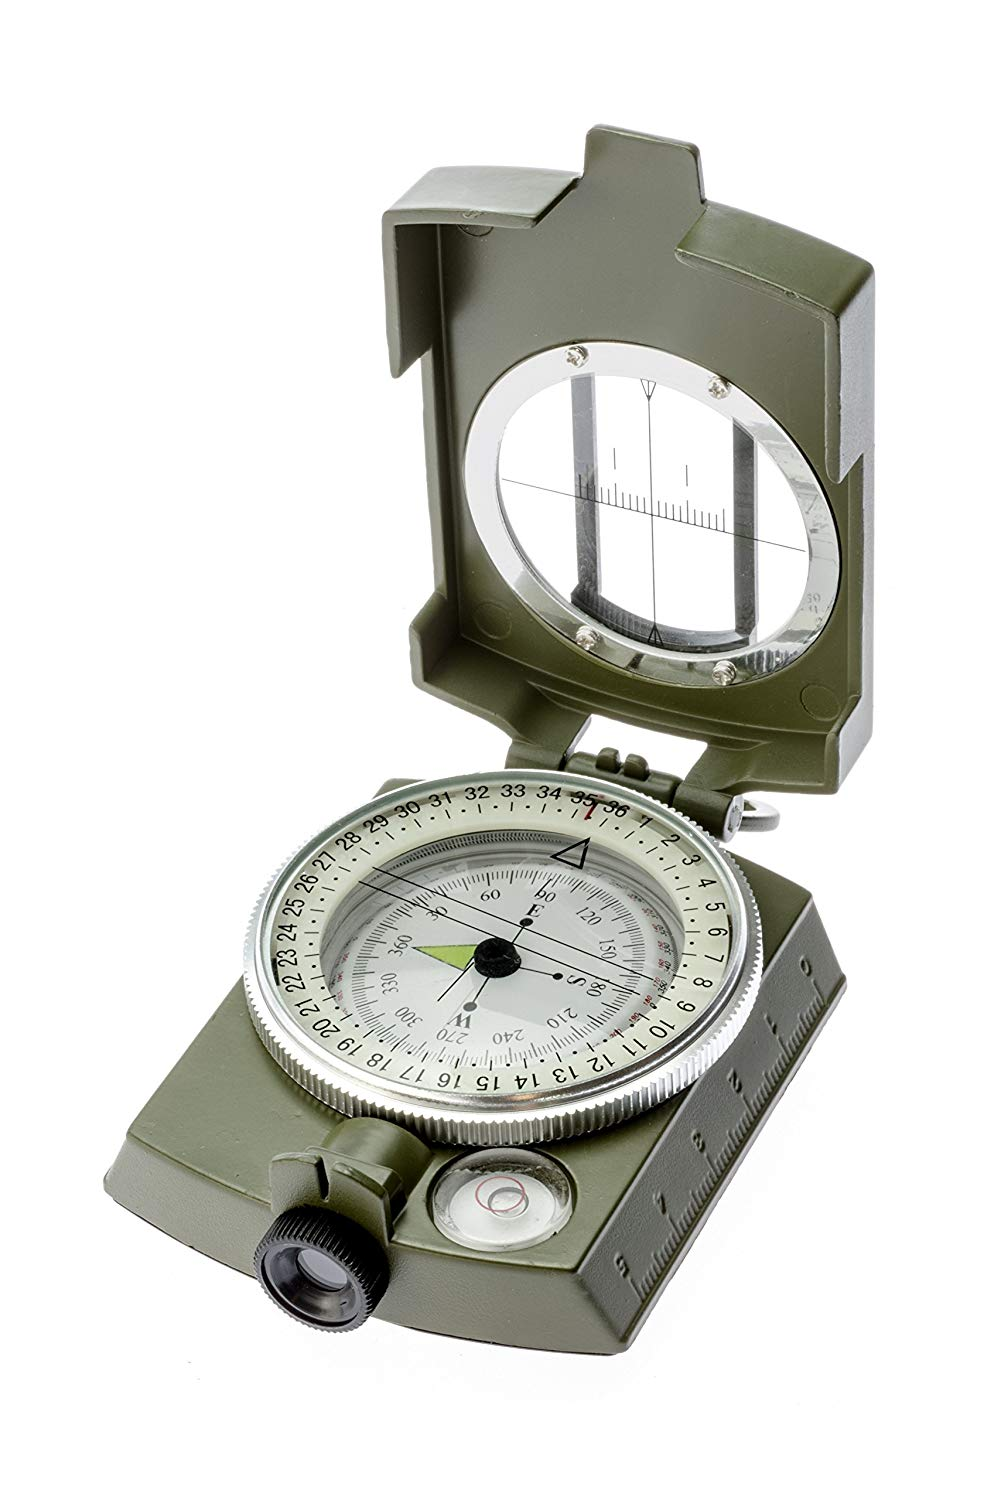 SE CC4580 Military Lensatic and Prismatic Sighting Survival Emergency Compass